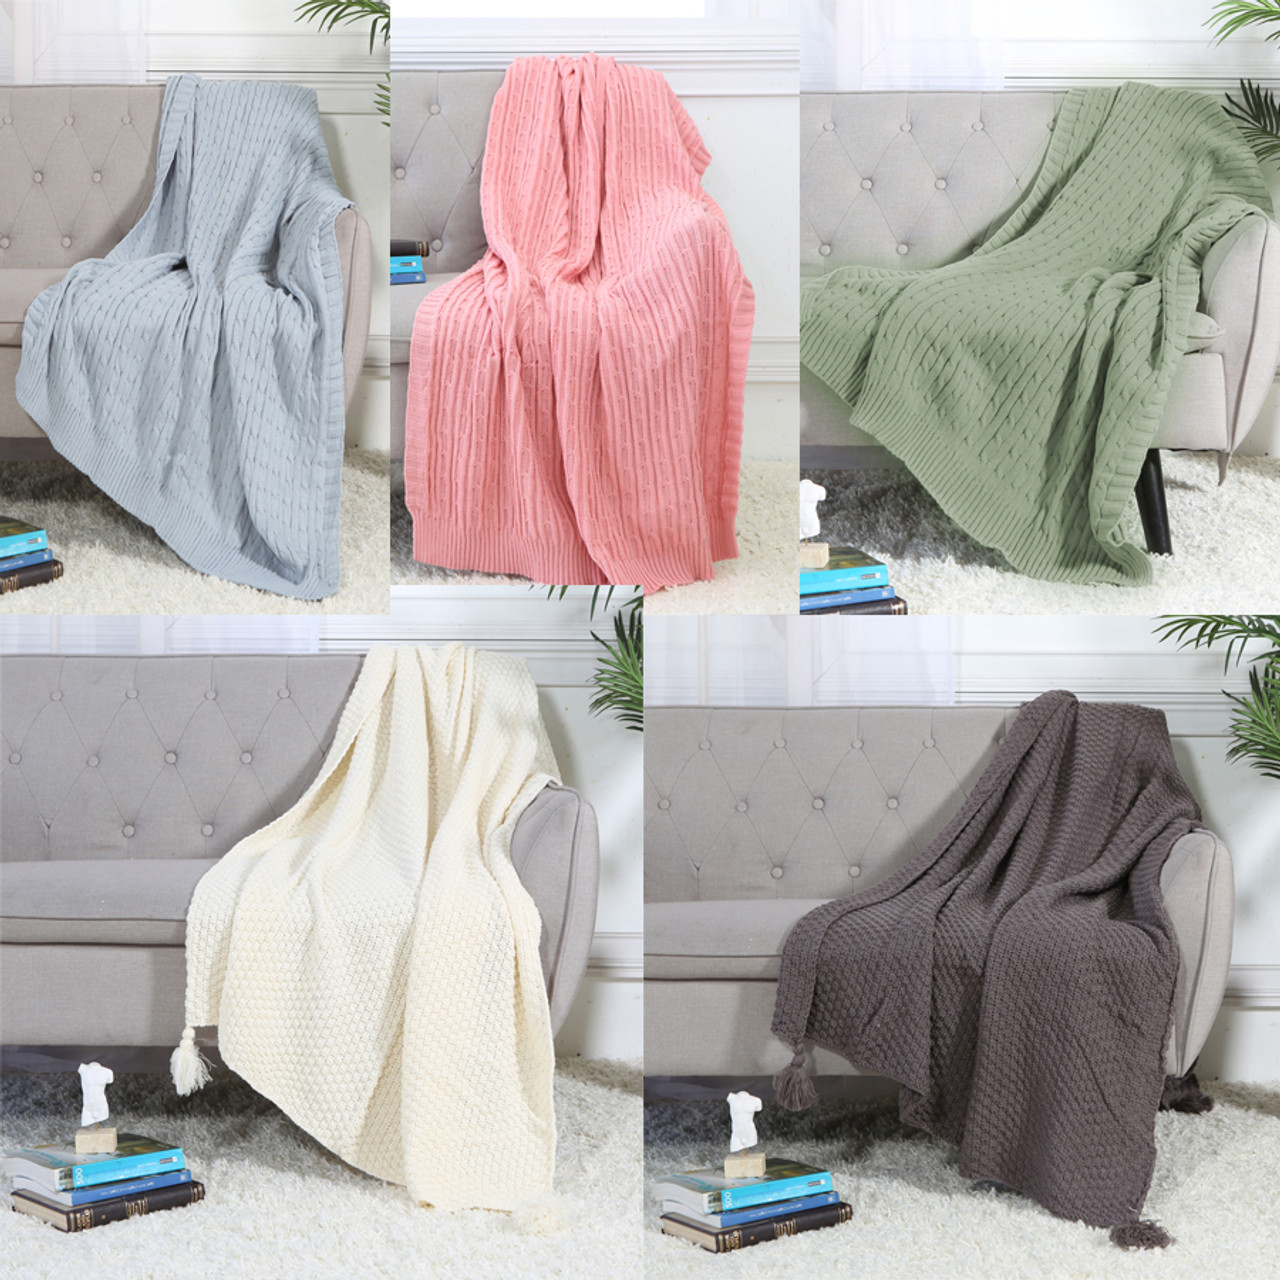 """Legacy Decor Cable Knit Sweater Design Soft Lightweight Throw Blanket, Blue, Pink, or Sage 50"""" x 60"""" or Charcoal, Ivory 50"""" x 70"""" with Tassels"""